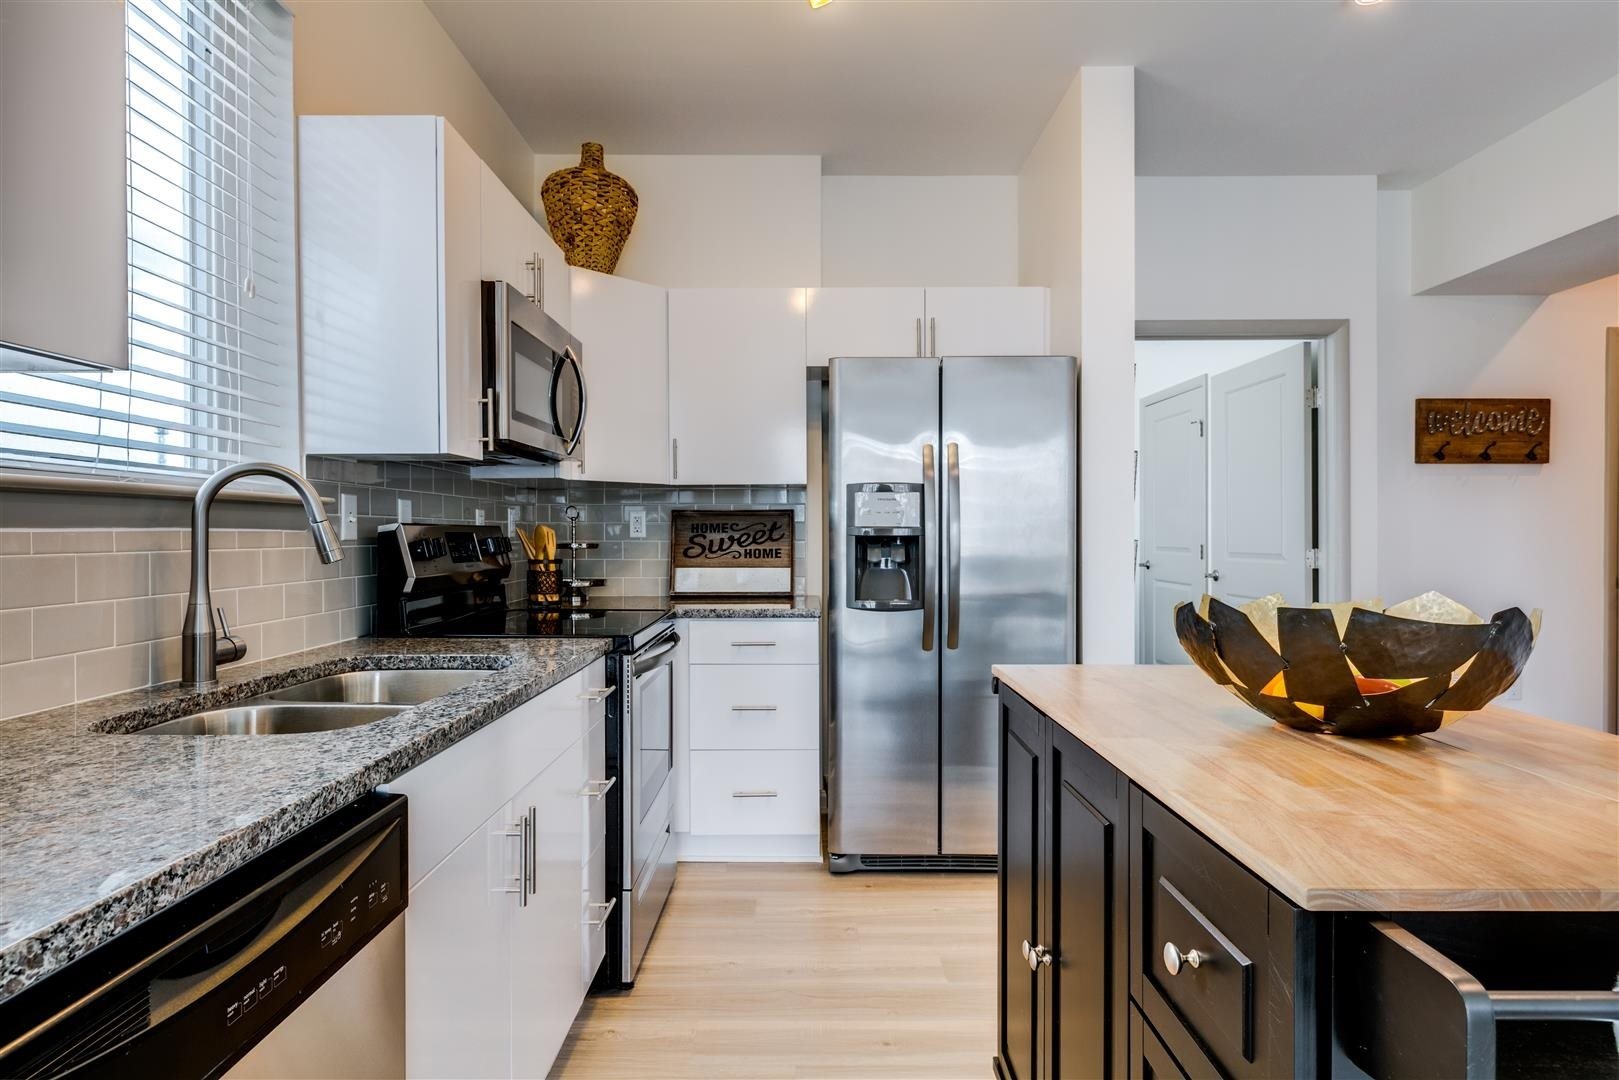 Modern kitchen with stainless steel appliances and island